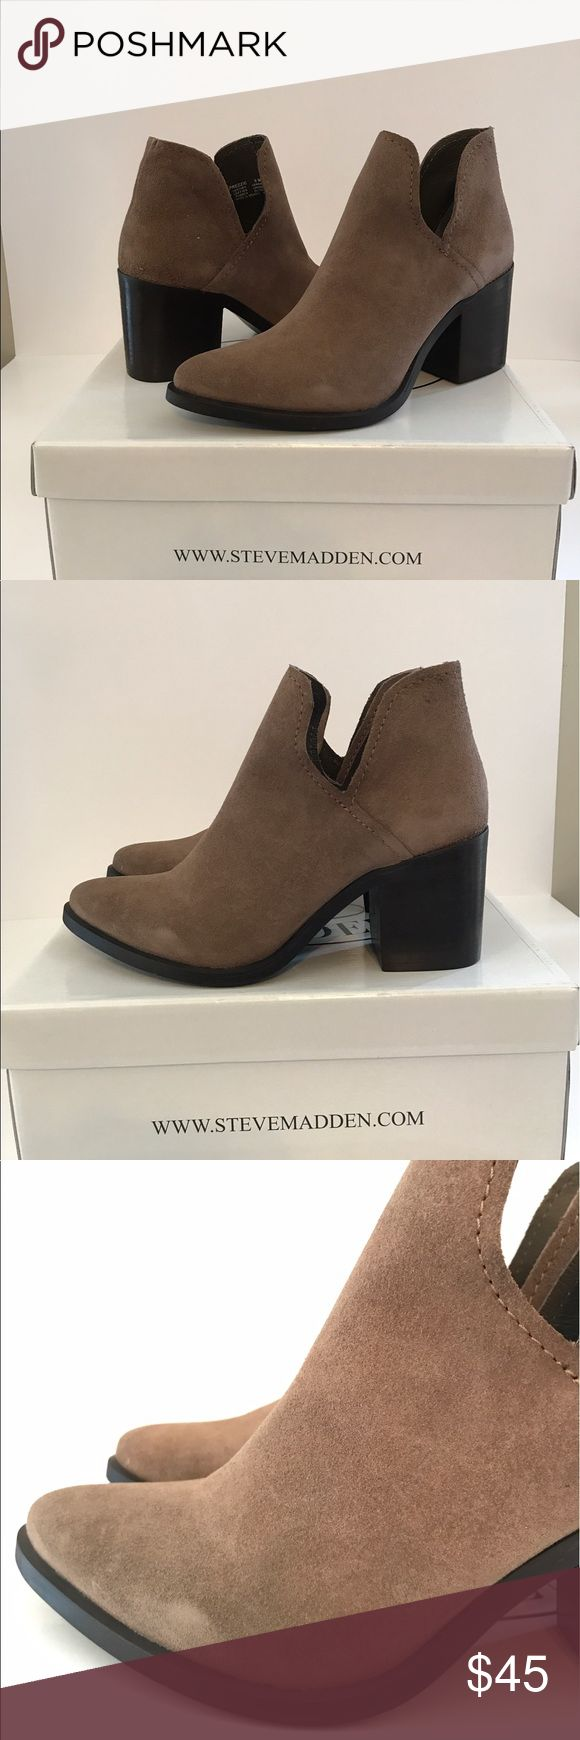 "LOWEST 🔥 $130 Steve Madden Suede Ankle Booties New in box Steve Madden 'Prezzie' booties in a fashionable side cutout style. Perfect shoe to go with some cute denim shorts for festival season! Sz 8 M. Tan suede with a 1.5"" stacked block heel. MRSP $130. Pull on style. Item will come as pictured! Steve Madden Shoes Ankle Boots & Booties"